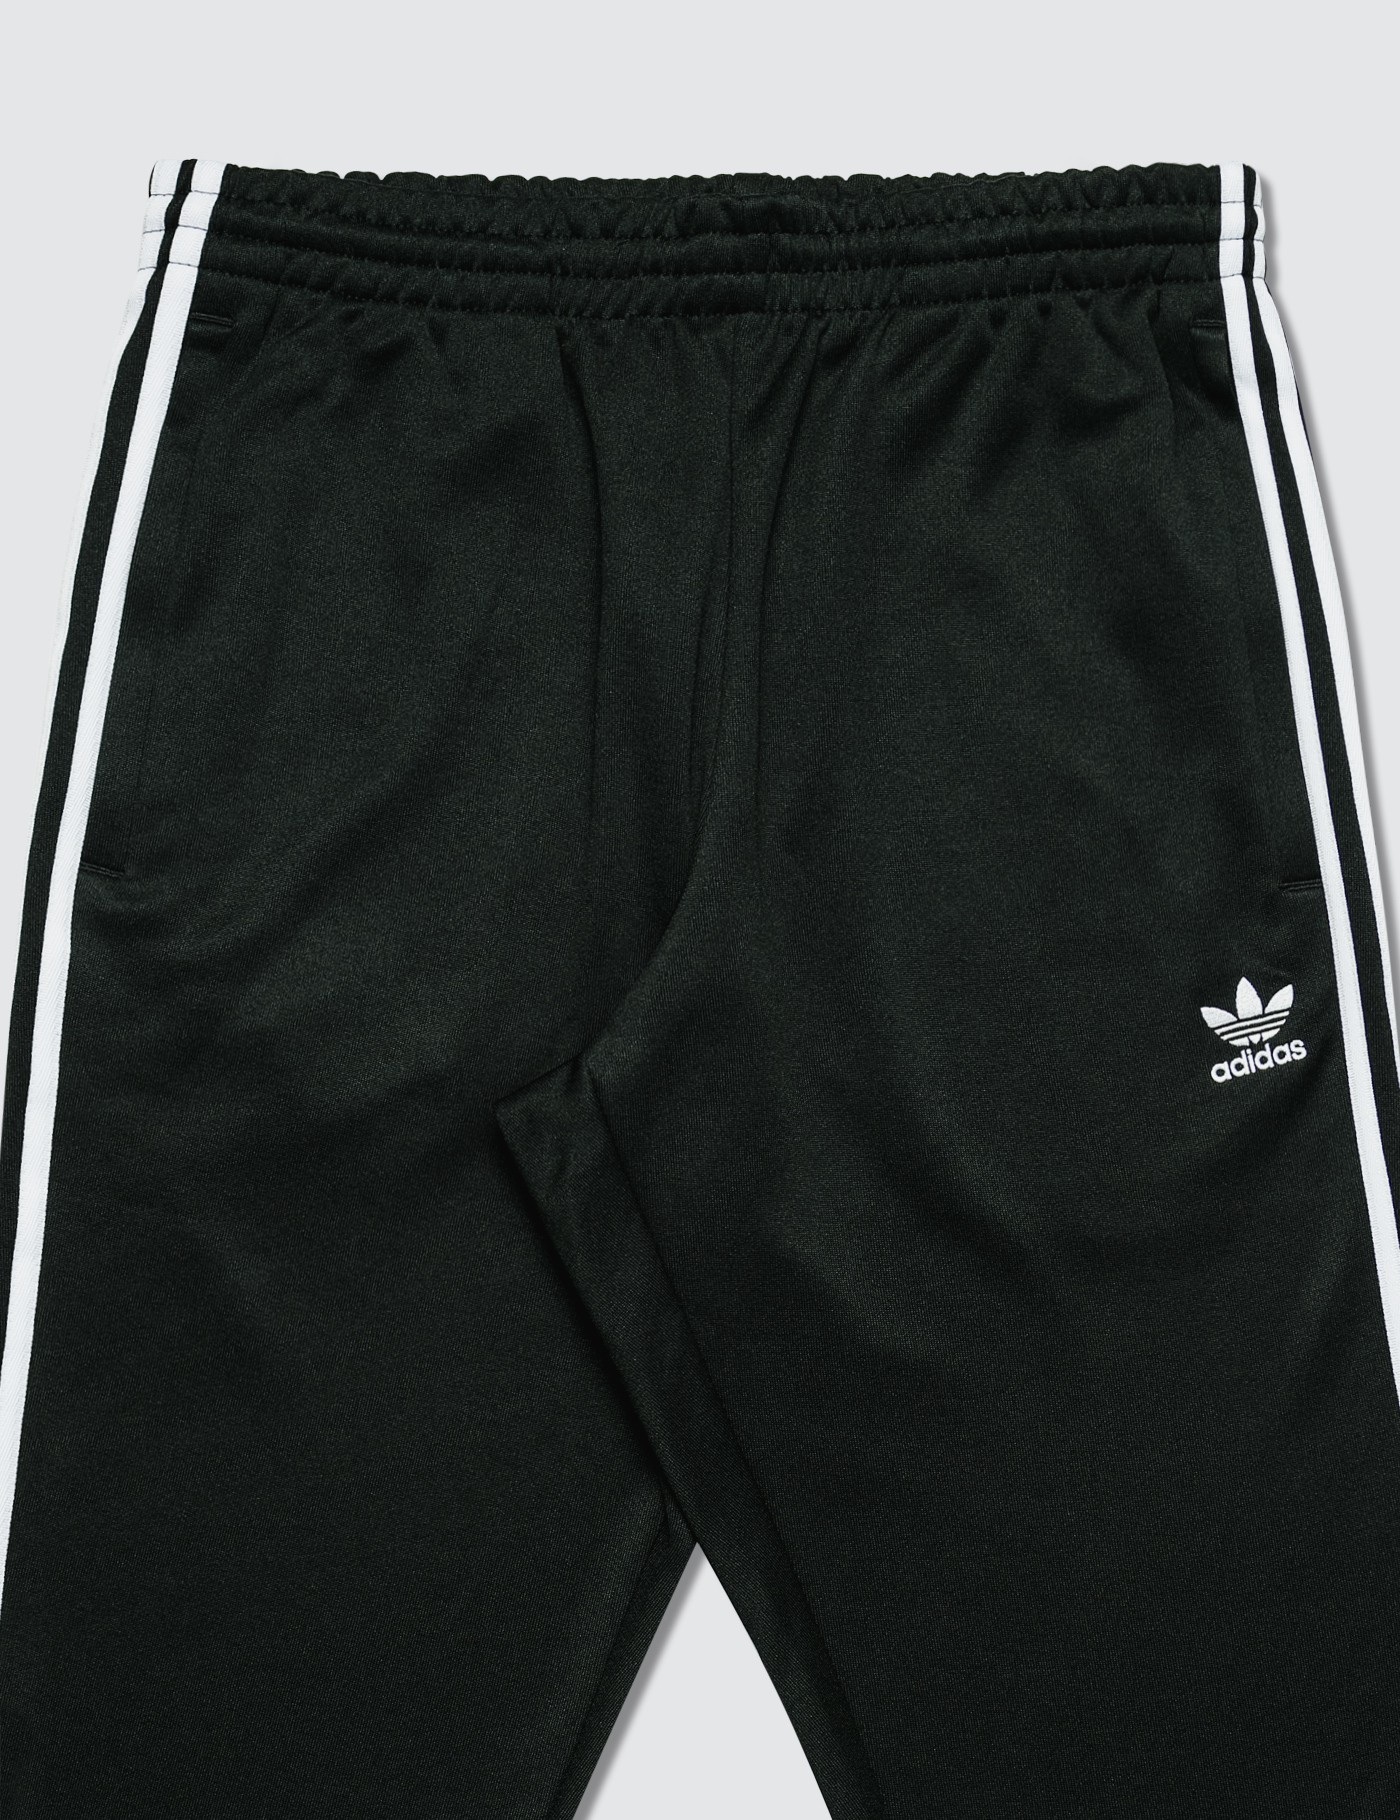 Adidas Originals Classic Primelue SST Track Pants